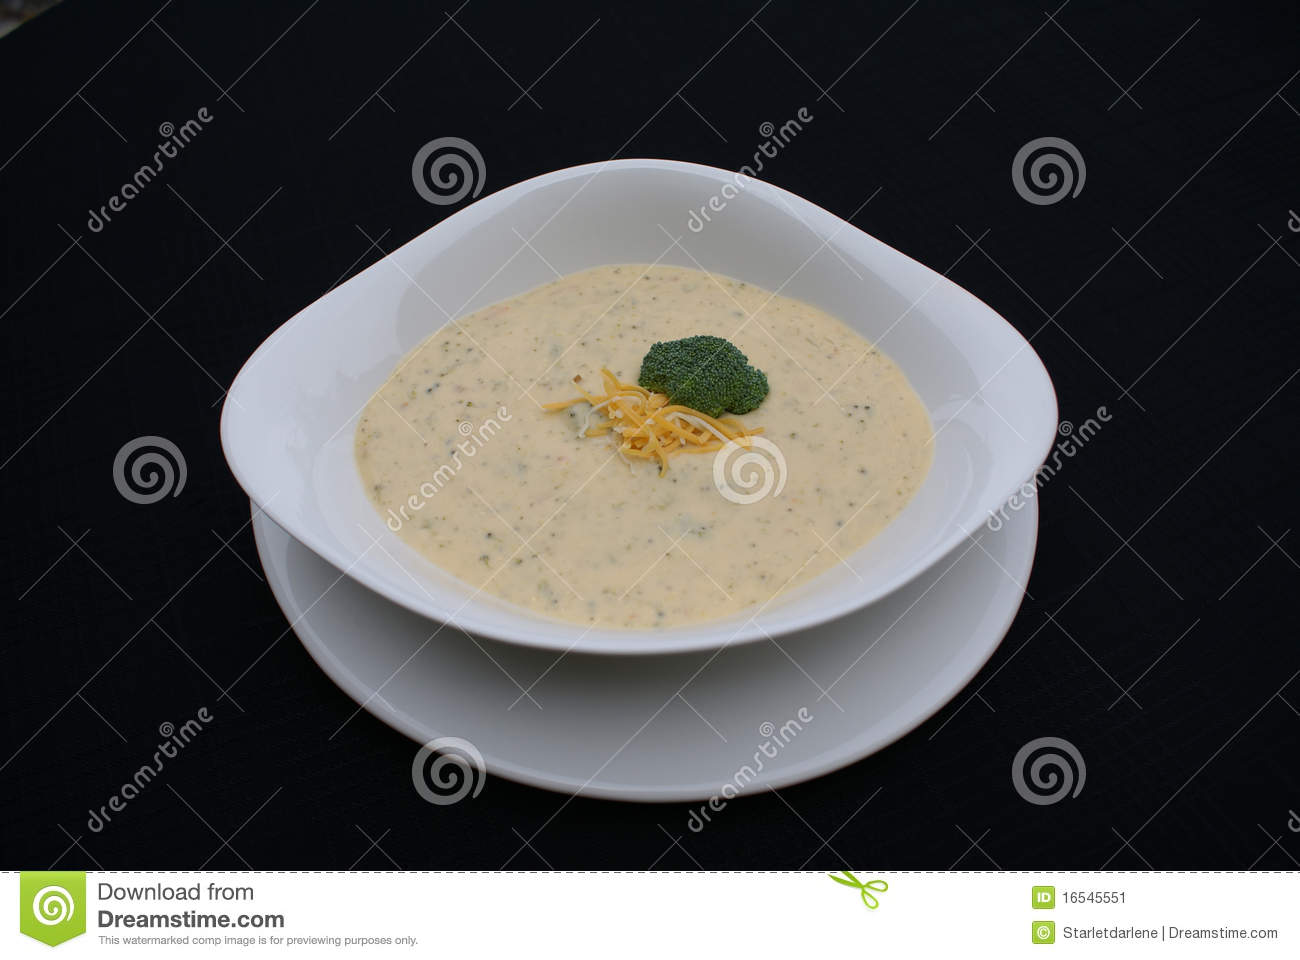 Potage de broccoli et de cheddar